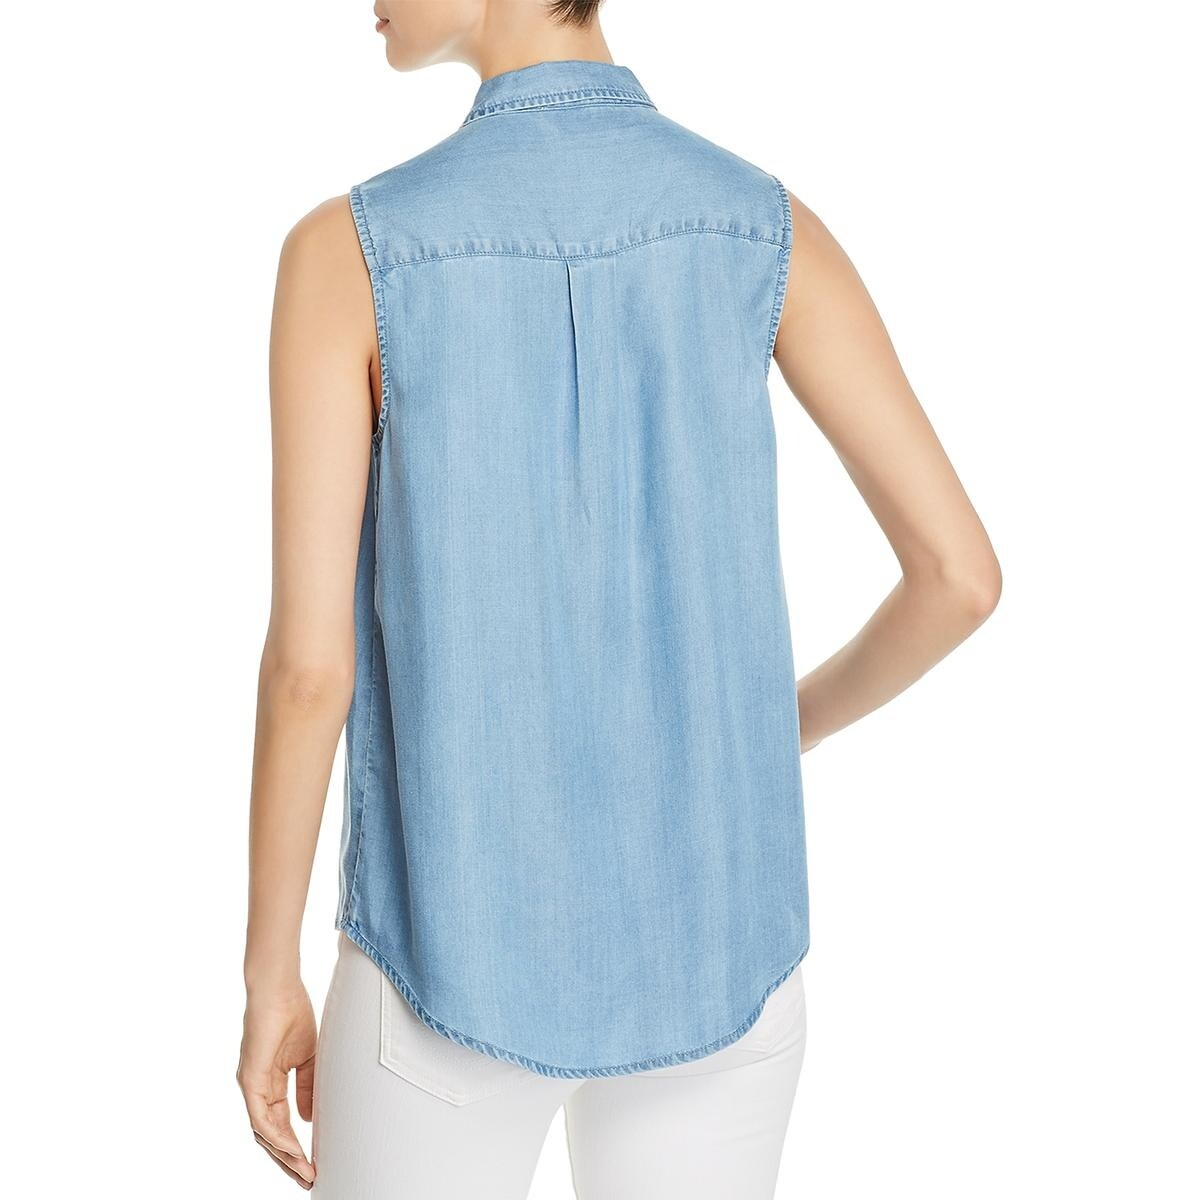 b319b37499 Shop Beach Lunch Lounge Womens Leilanah Button-Down Top Chambray Pineapple  Print - Free Shipping On Orders Over $45 - Overstock - 20895503